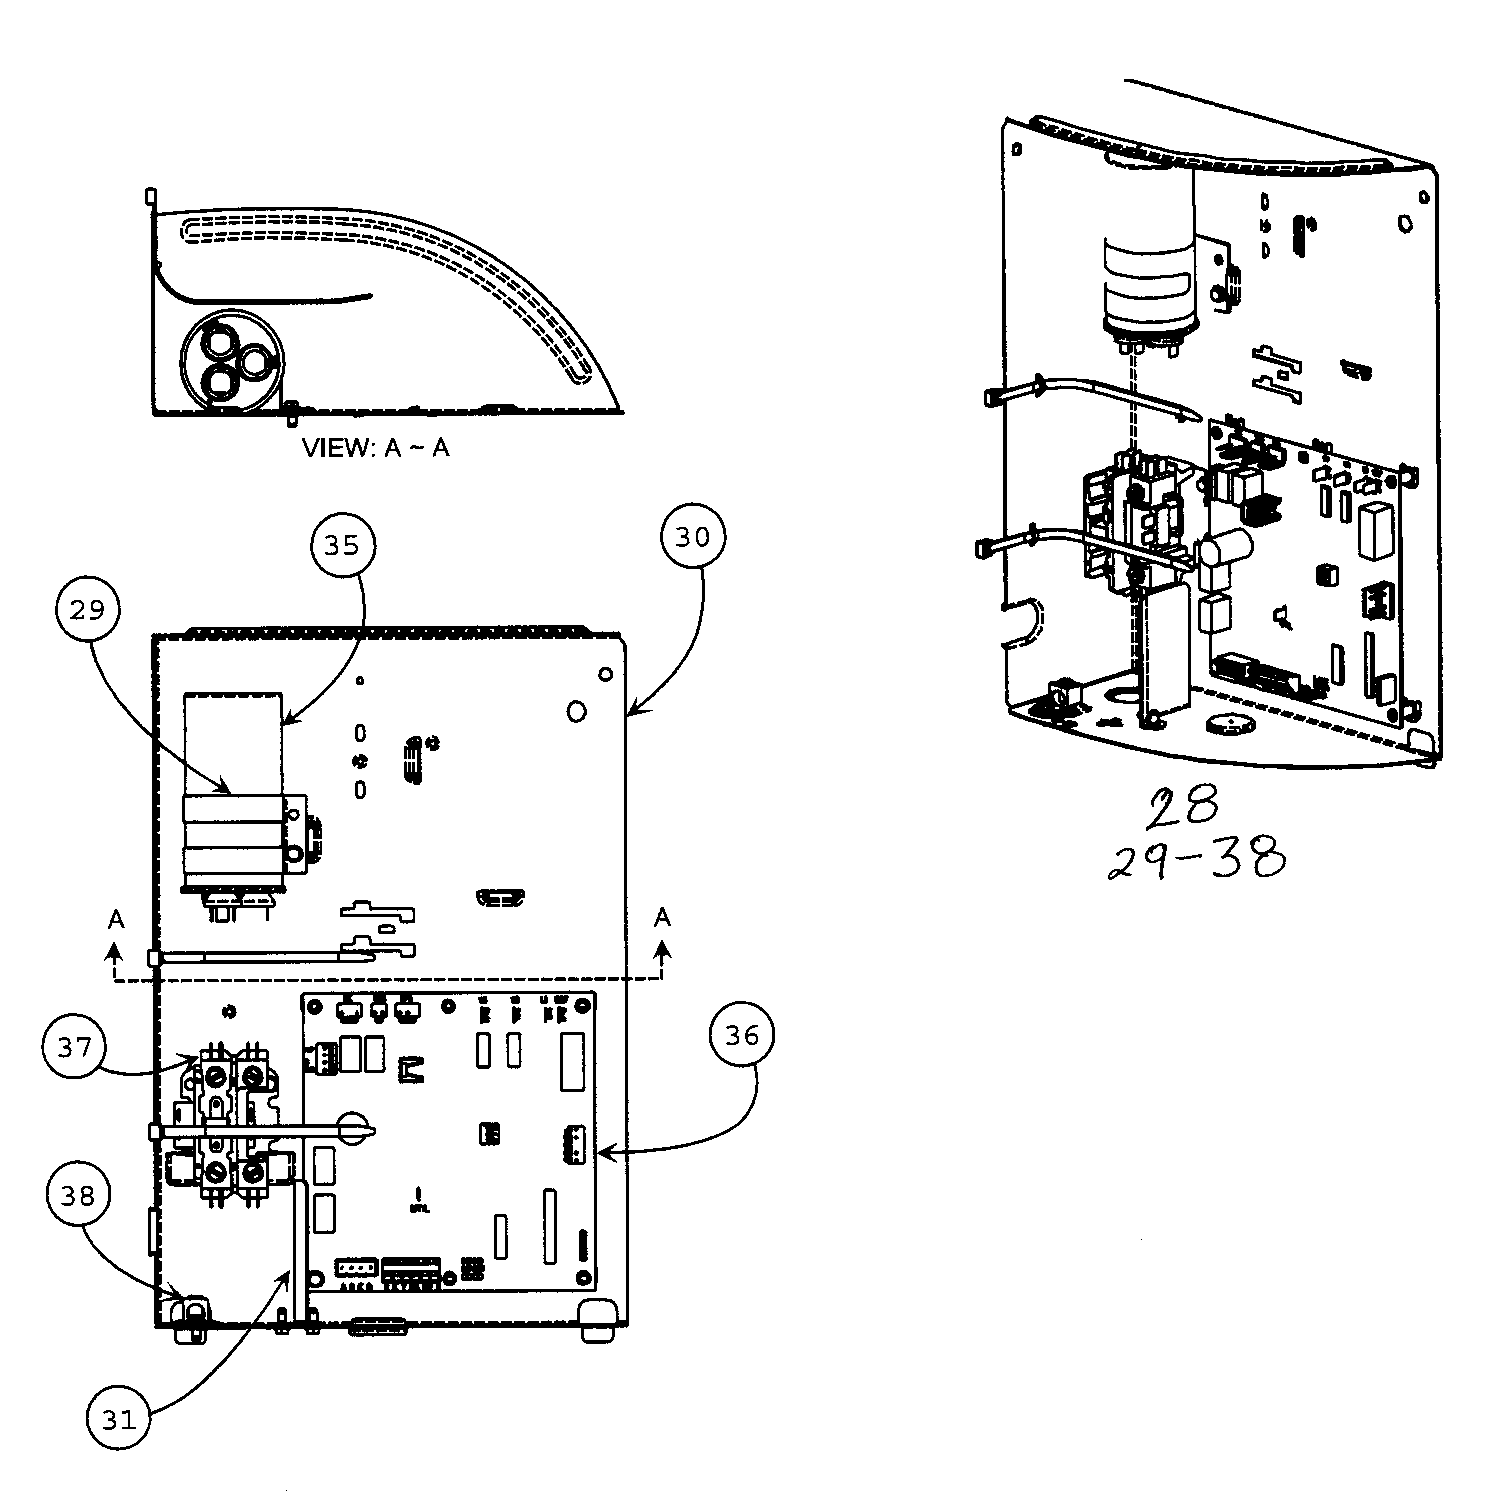 Carrier Furnace Schematic Diagram Carrier Blower Motor